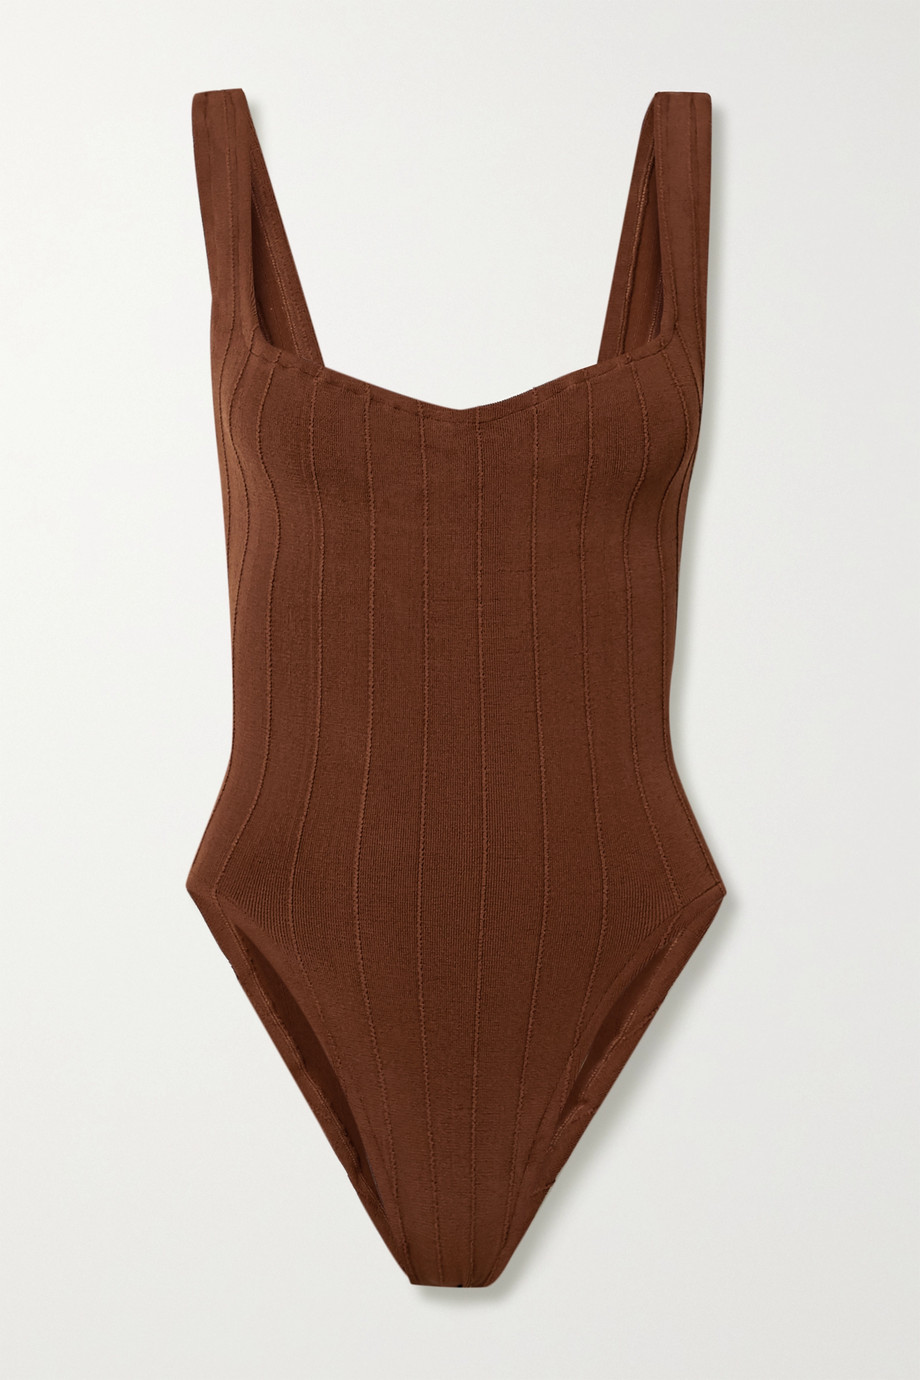 Hunza G Nile Anthea ribbed swimsuit